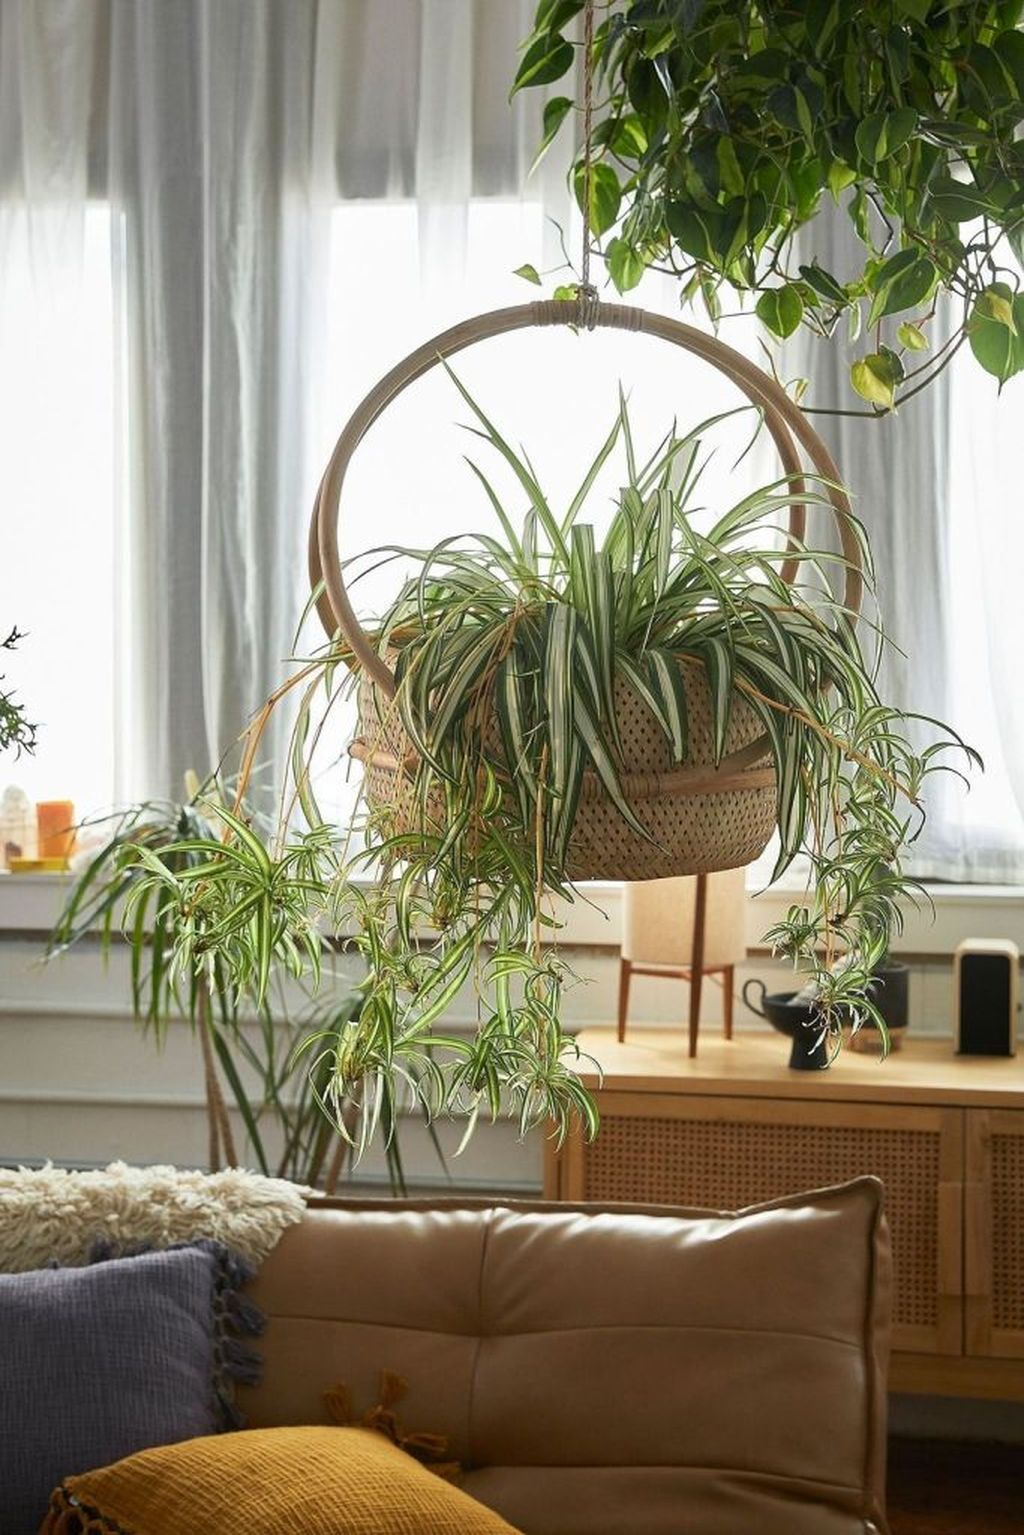 Favorite Home Patio Design Ideas With Best Hanging Plants 12